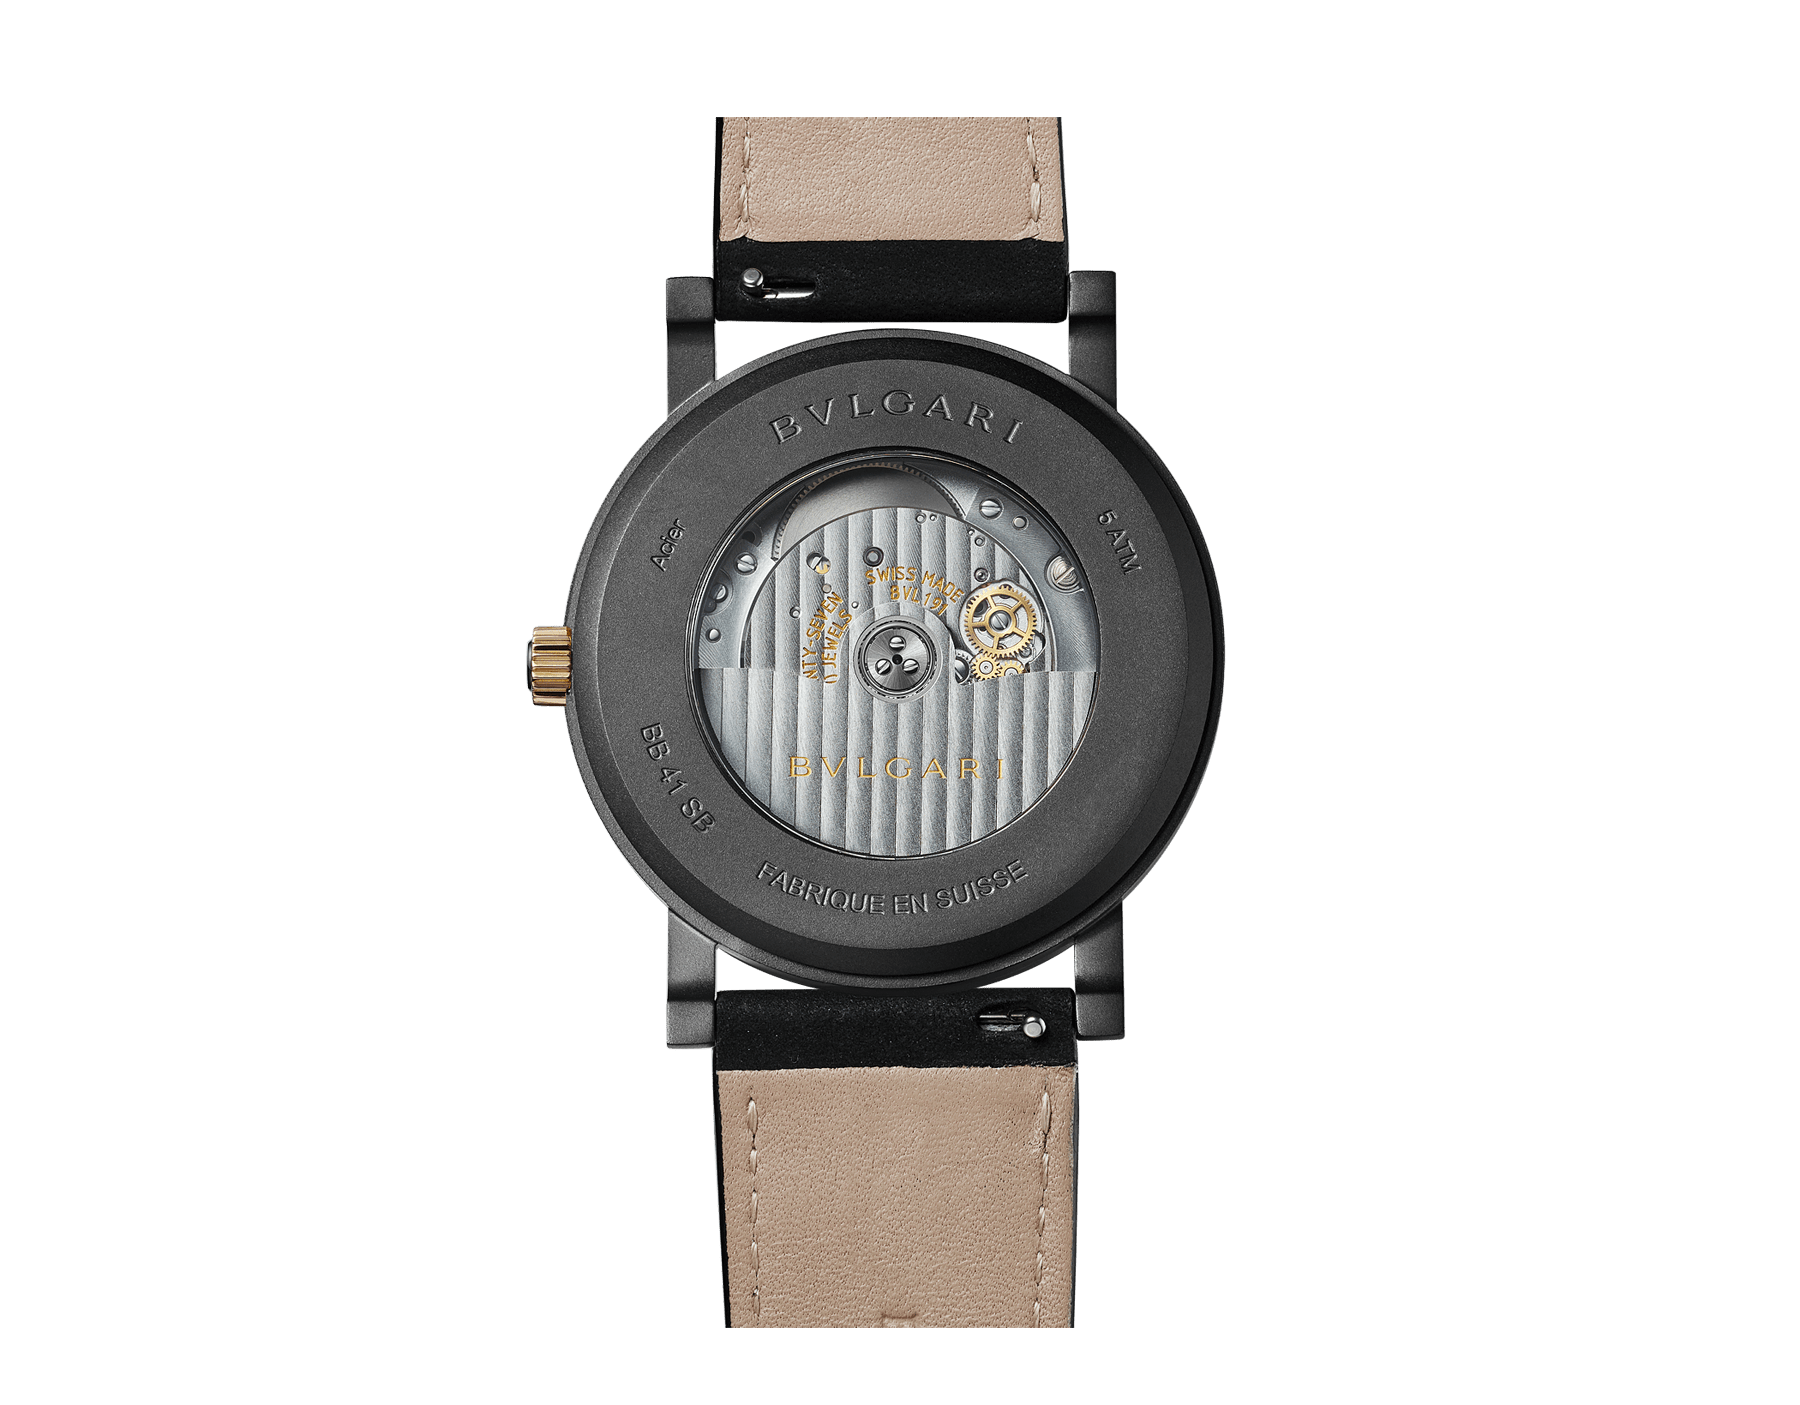 BVLGARI BVLGARI Solotempo watch with mechanical manufacture movement, automatic winding and date, stainless steel case treated with black Diamond Like Carbon, bronze bezel engraved with double logo, black dial, black leather bracelet and interchangeable black rubber bracelet 102931 image 3